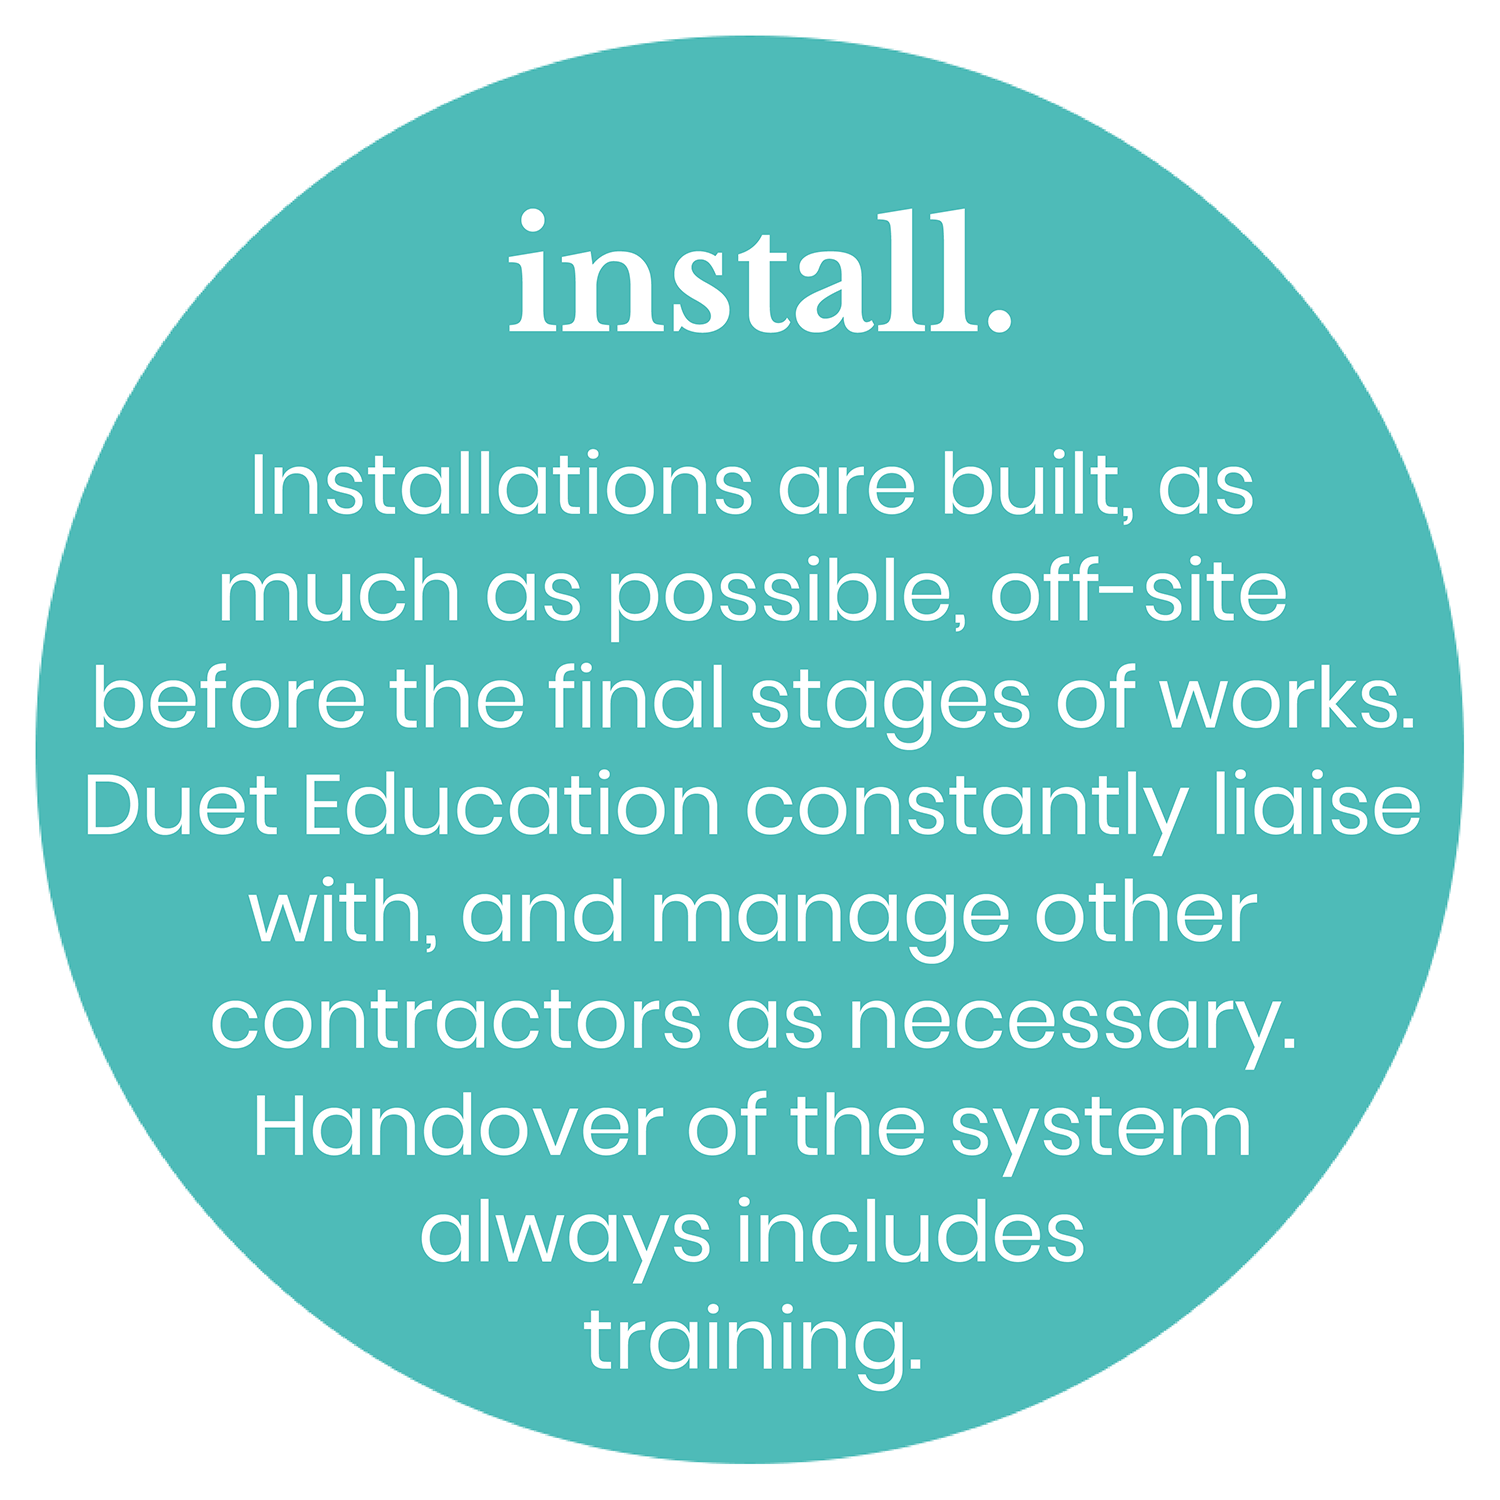 Install. Installations are built, as much as possible, off-site before the final stages of works. Duet Education constantly liaise with, and manage other contractors as necessary. Handover of the system always includes training.